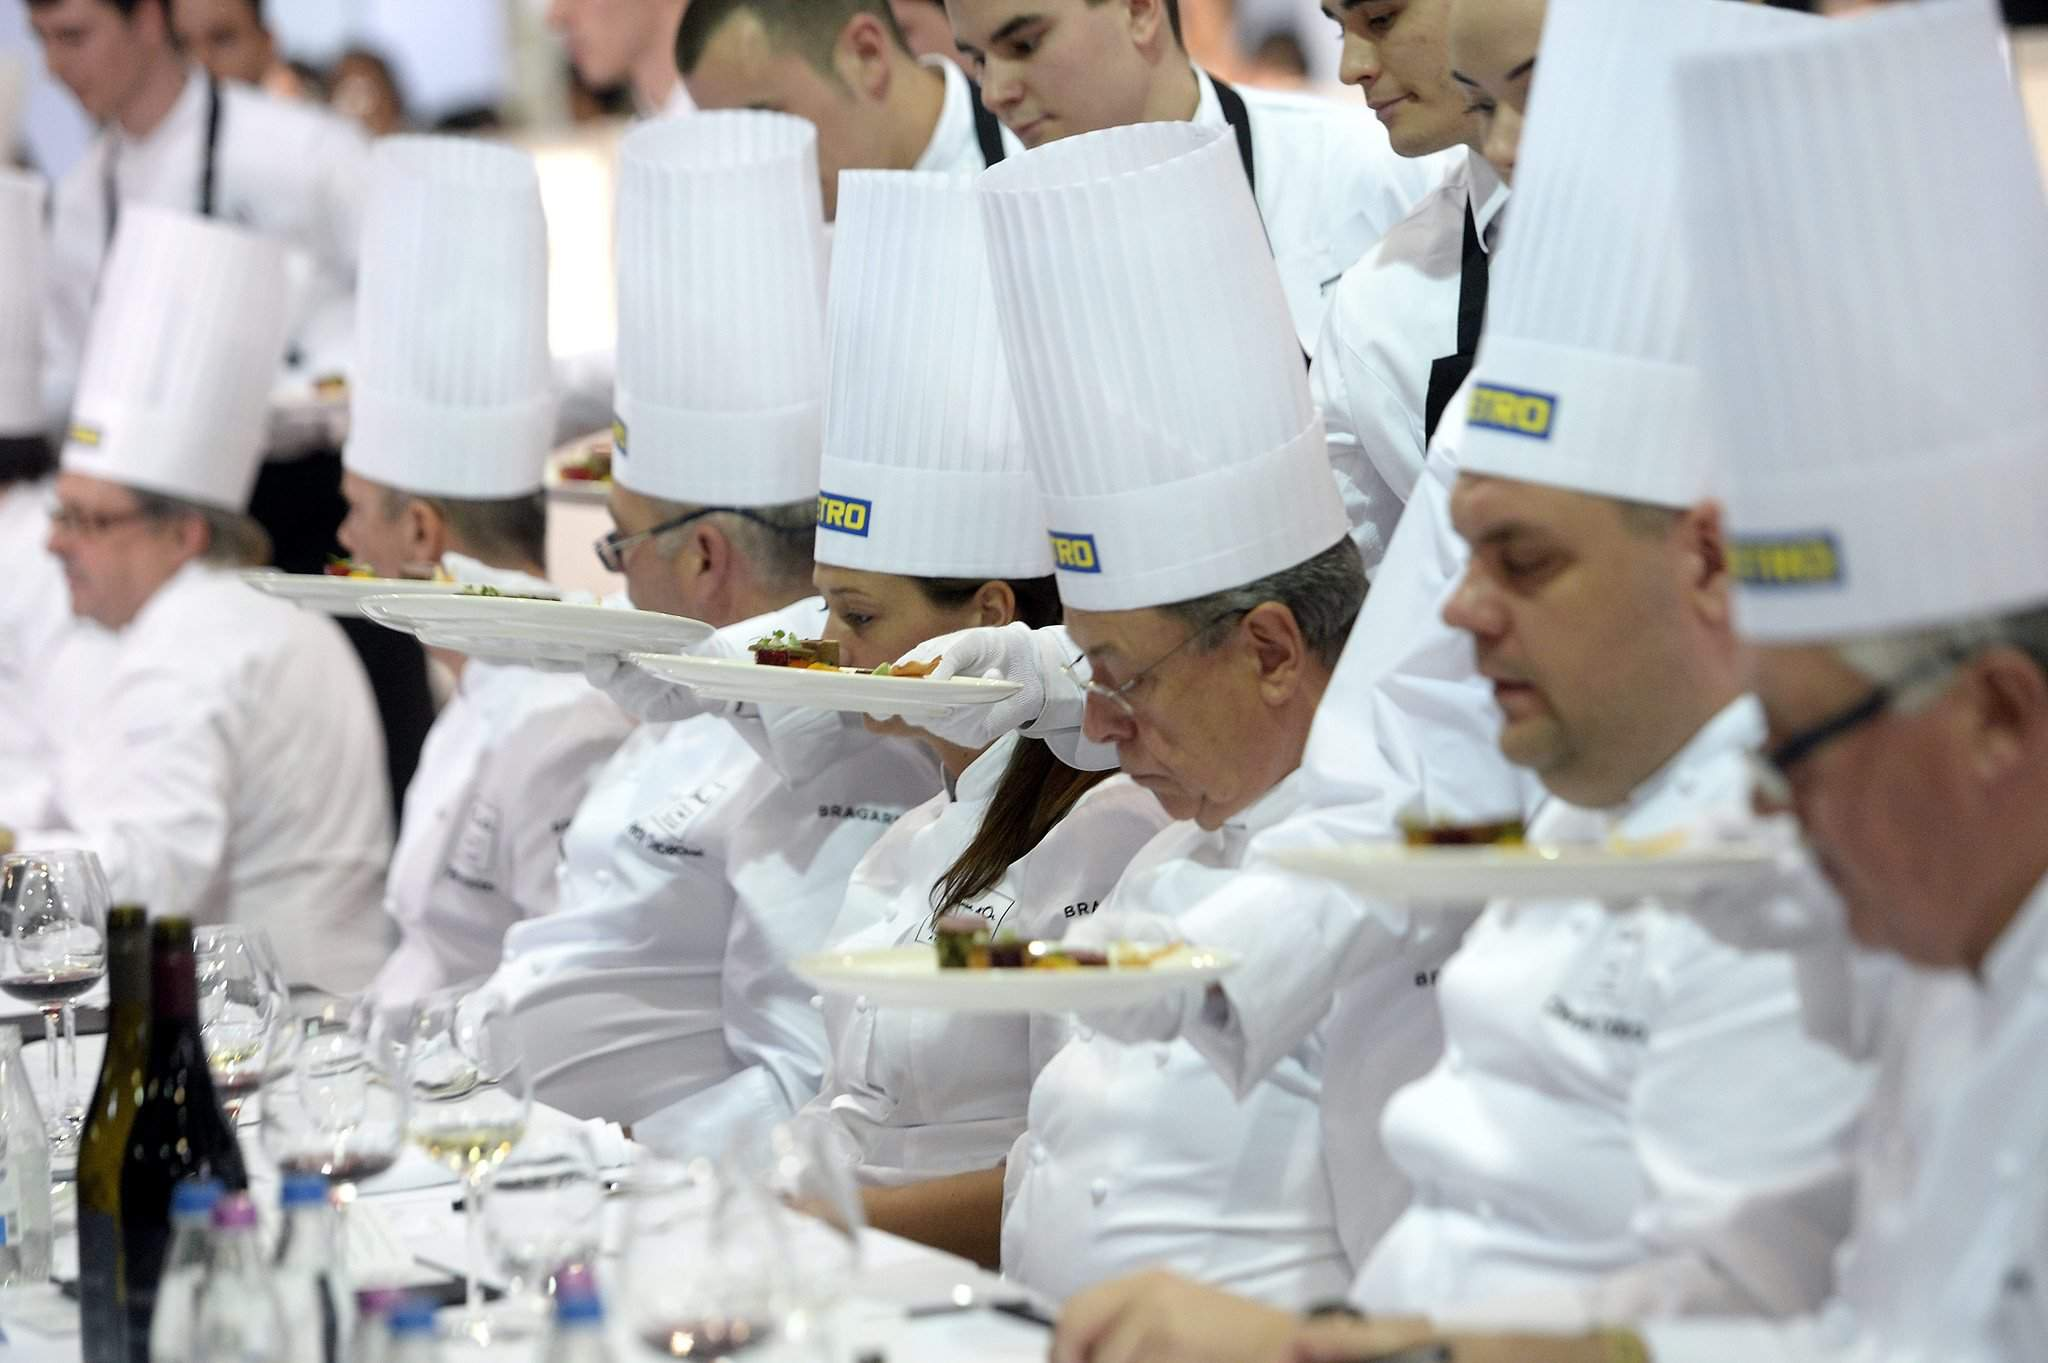 Tamás Széll, chef of Onyx Restaurant will represent Hungary in the European finals of Bocuse d'Or